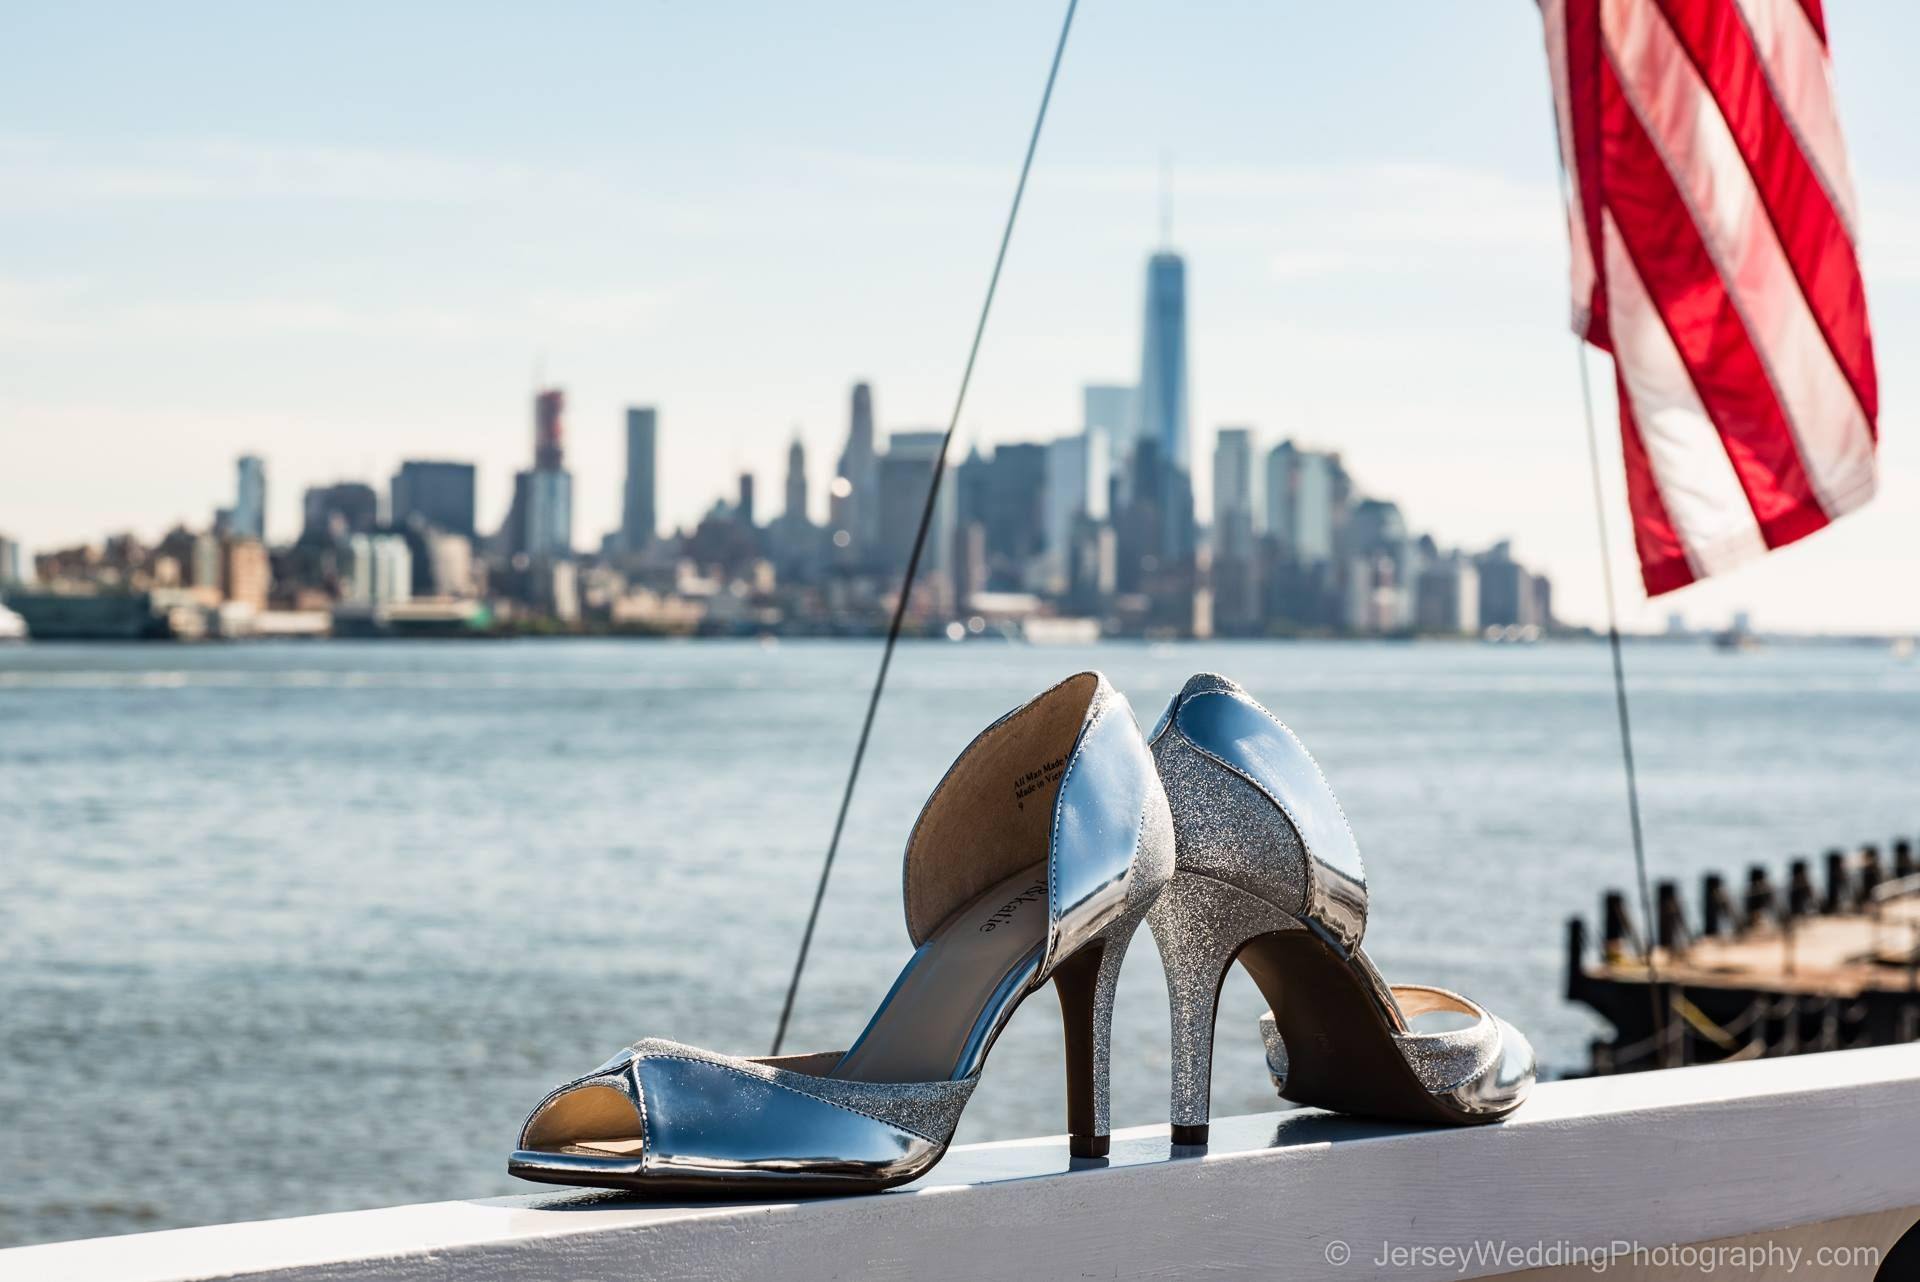 Donna's shoes on the stern of the yacht she was married on --The Royal Princess. #wedding #weddingPhotographer #weddingphotographer #yachtwedding #Bridalshoes